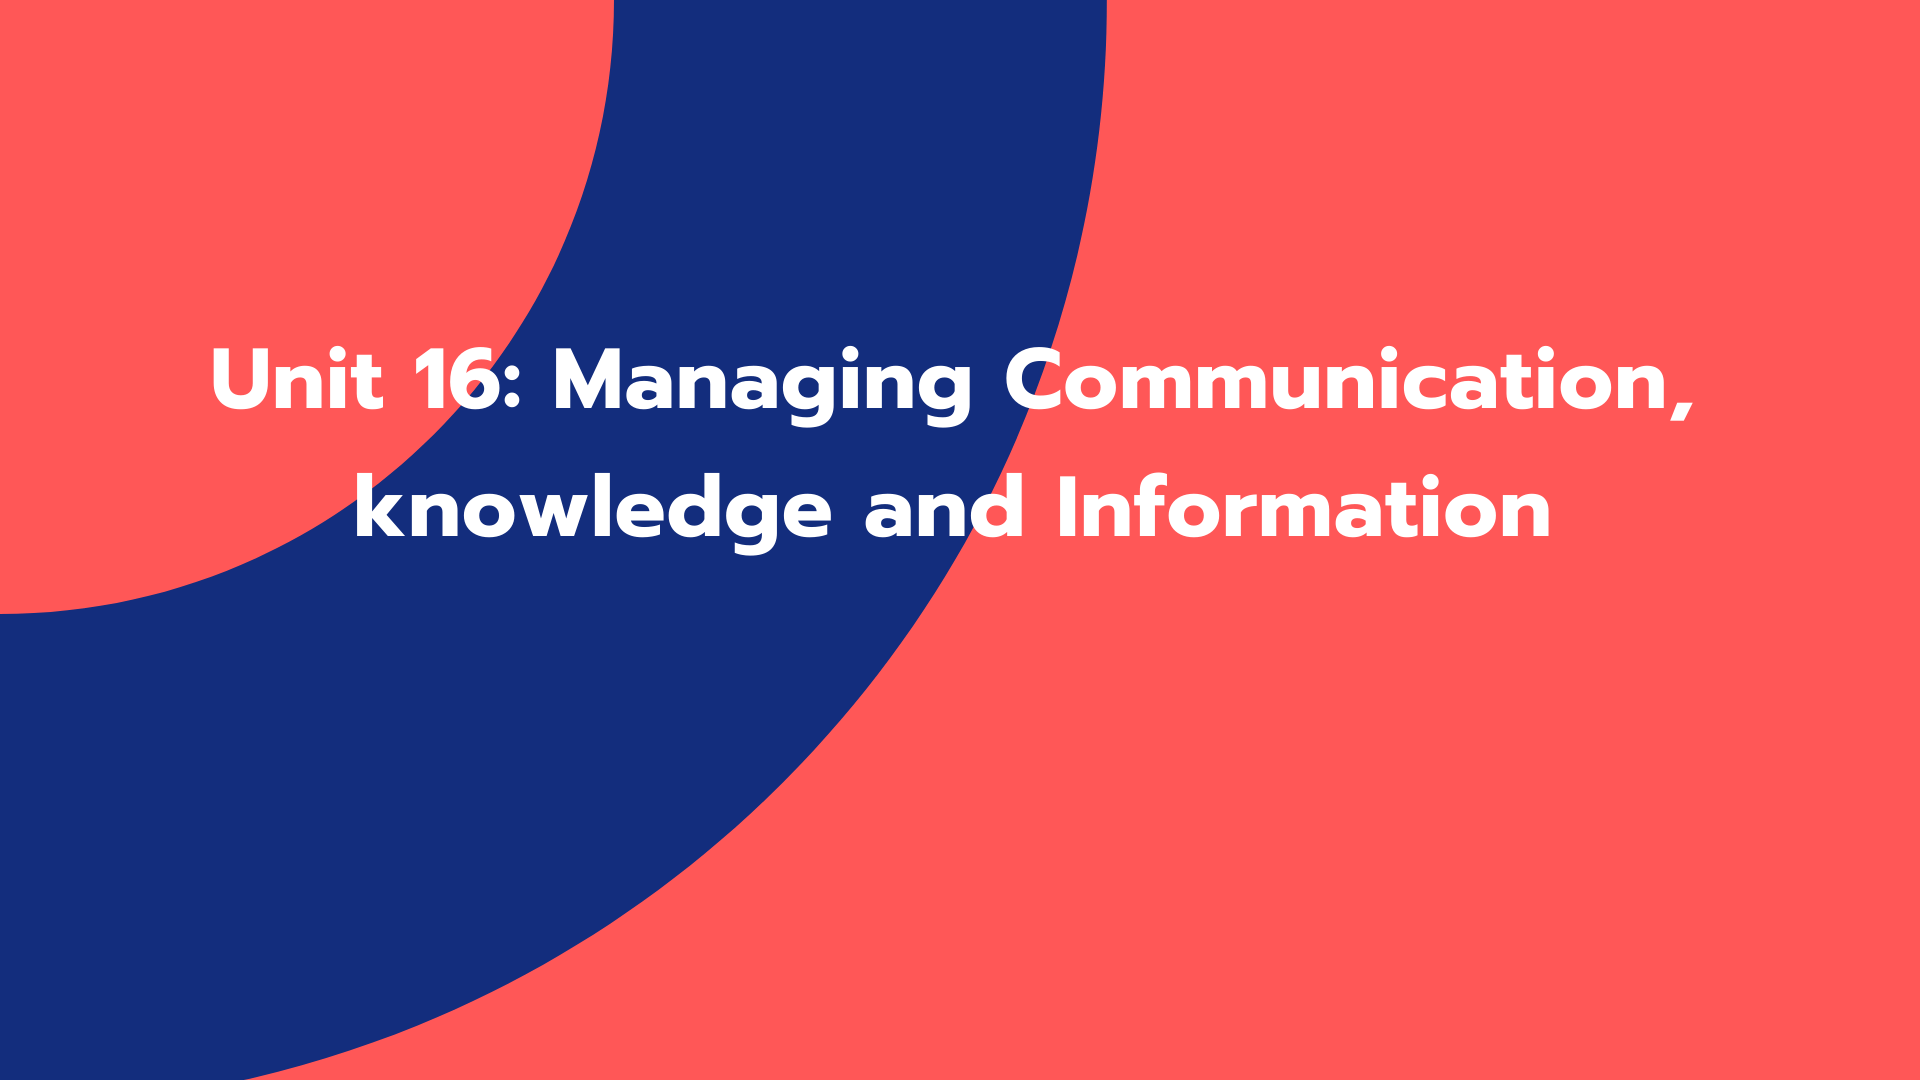 Unit 16: Managing Communication, knowledge and Information